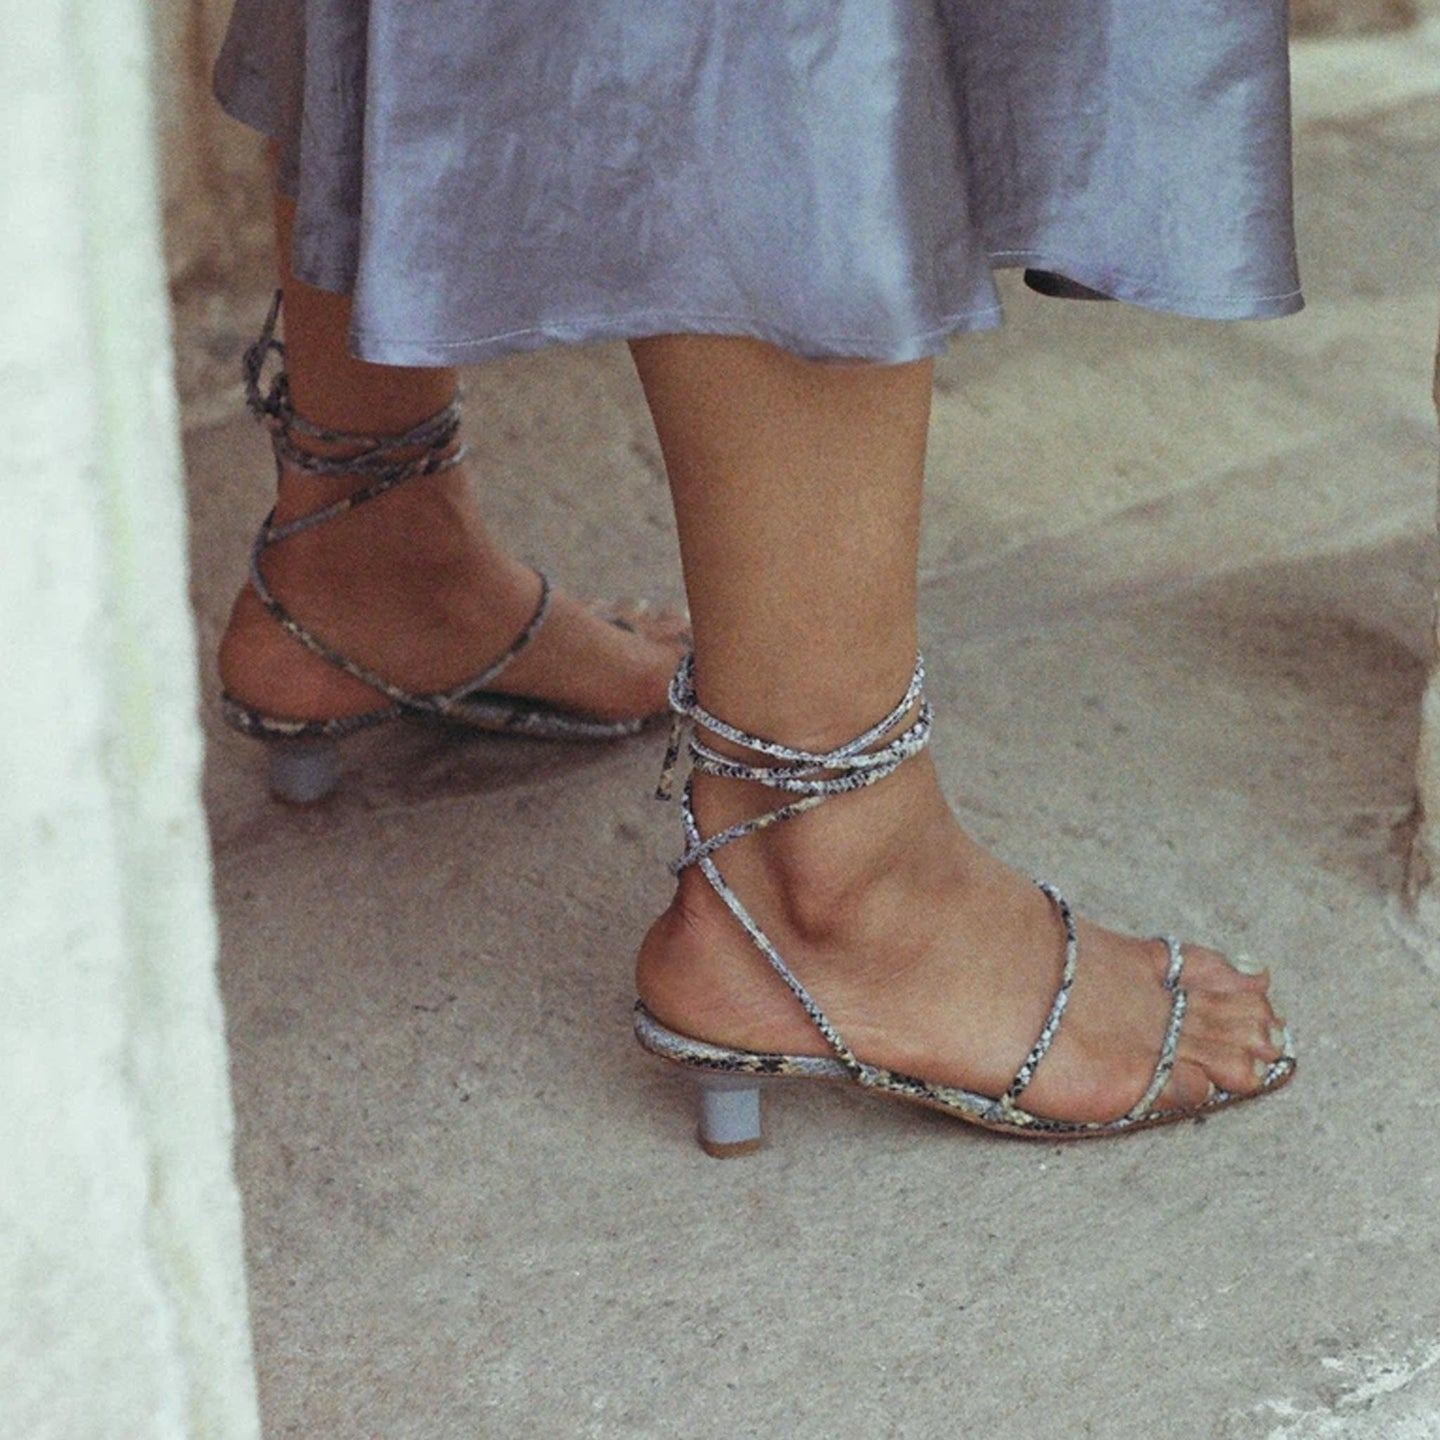 LoQ - Roma Sandals - Luna Snake, available at LCD.